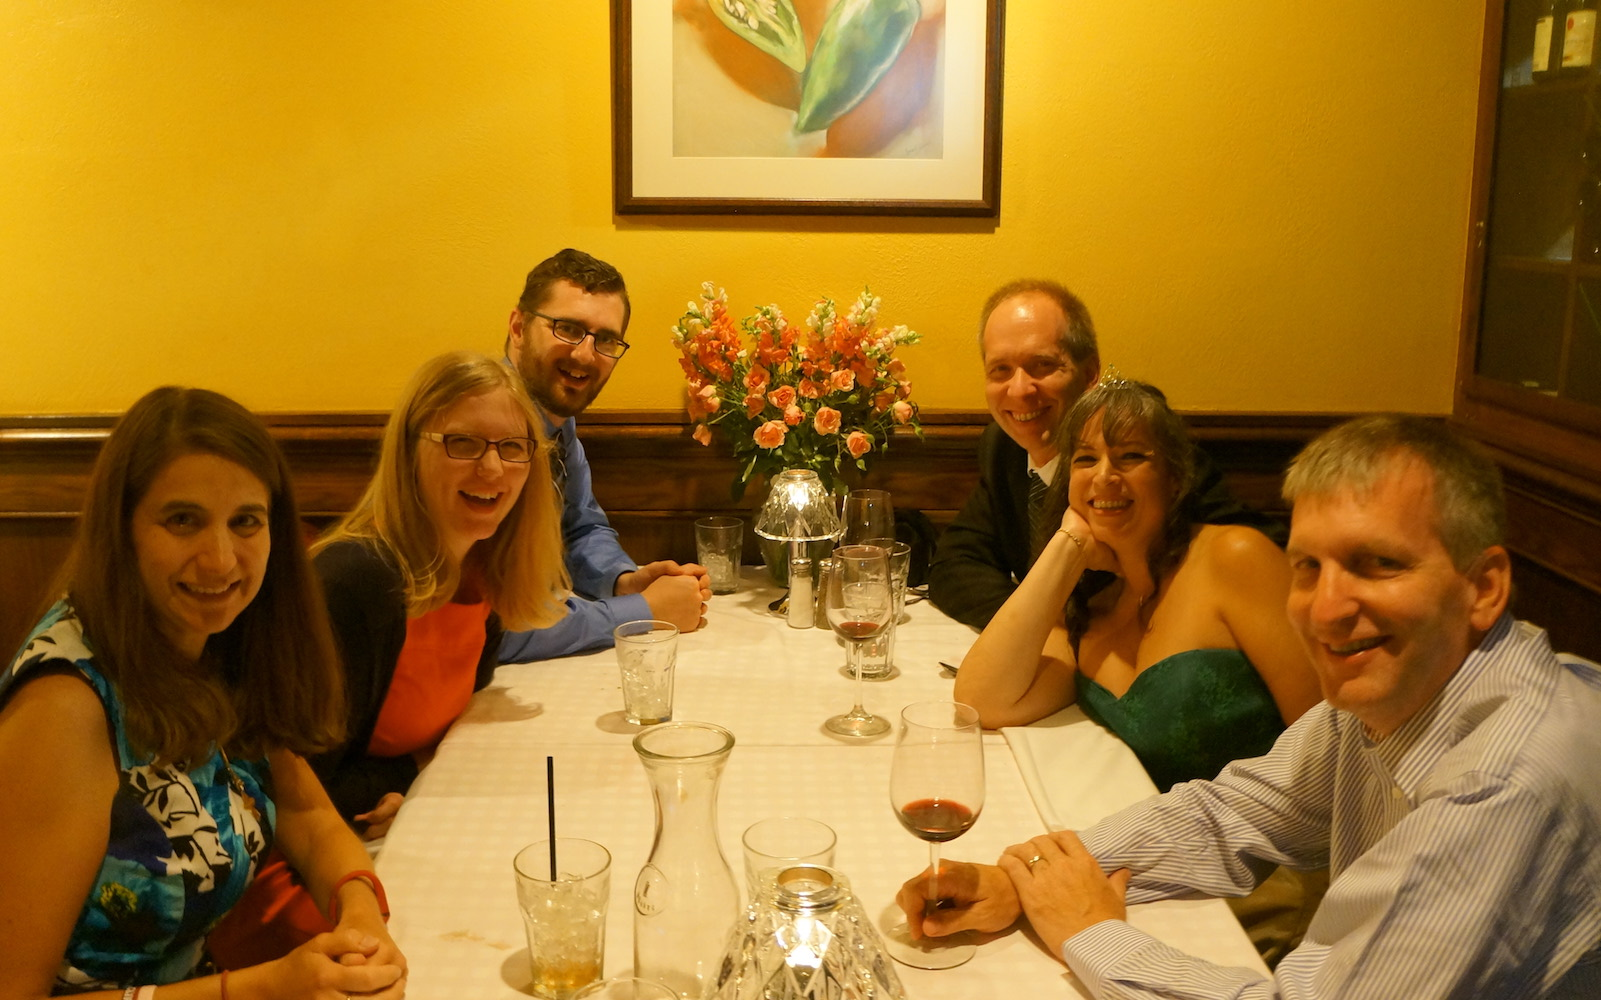 Greg and Lucie Dils host a wedding reception with coworkers in Iowa